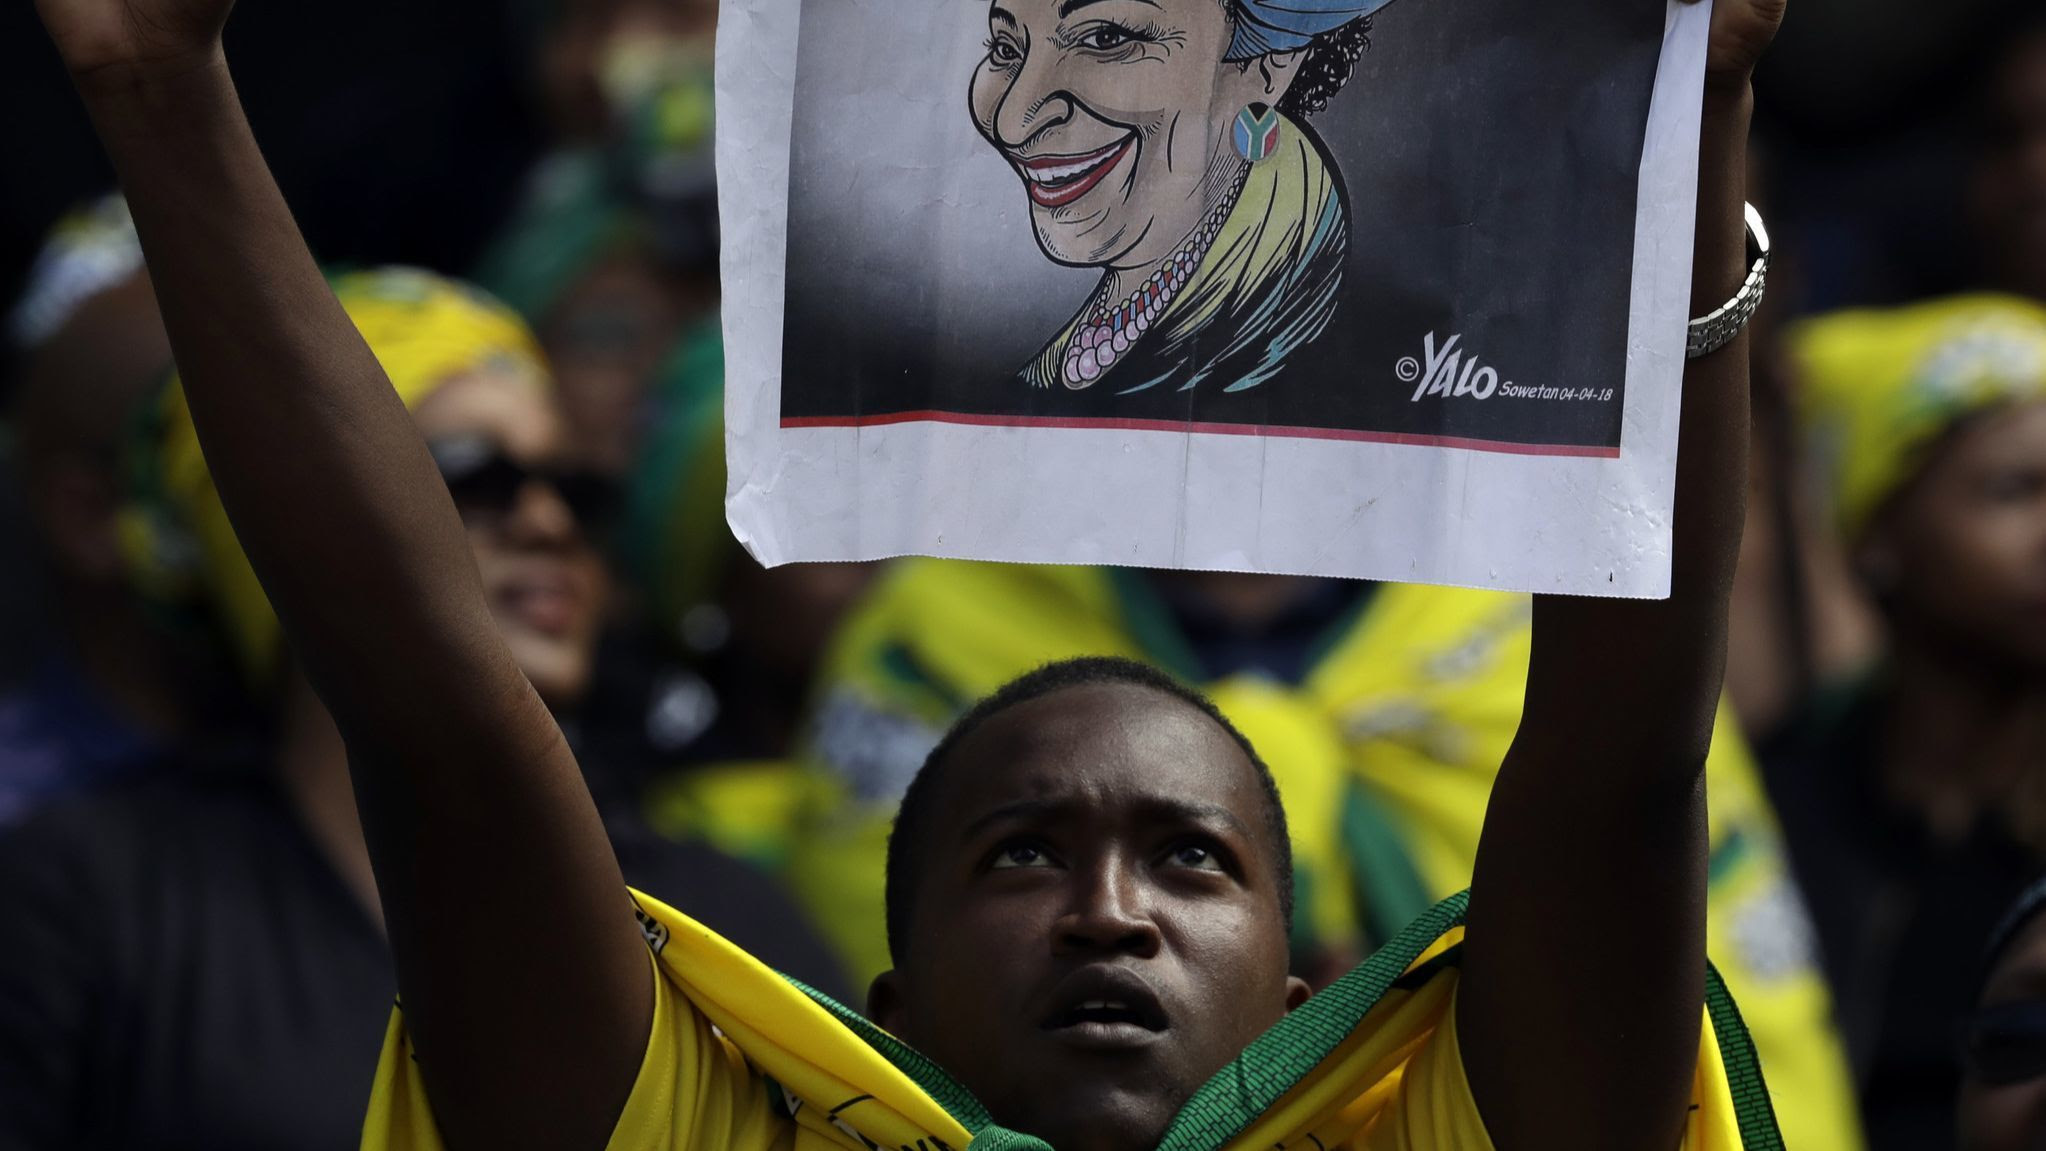 A mourner attends the funeral of struggle icon Winnie Madikizela-Mandela, at the Orlando Stadium in